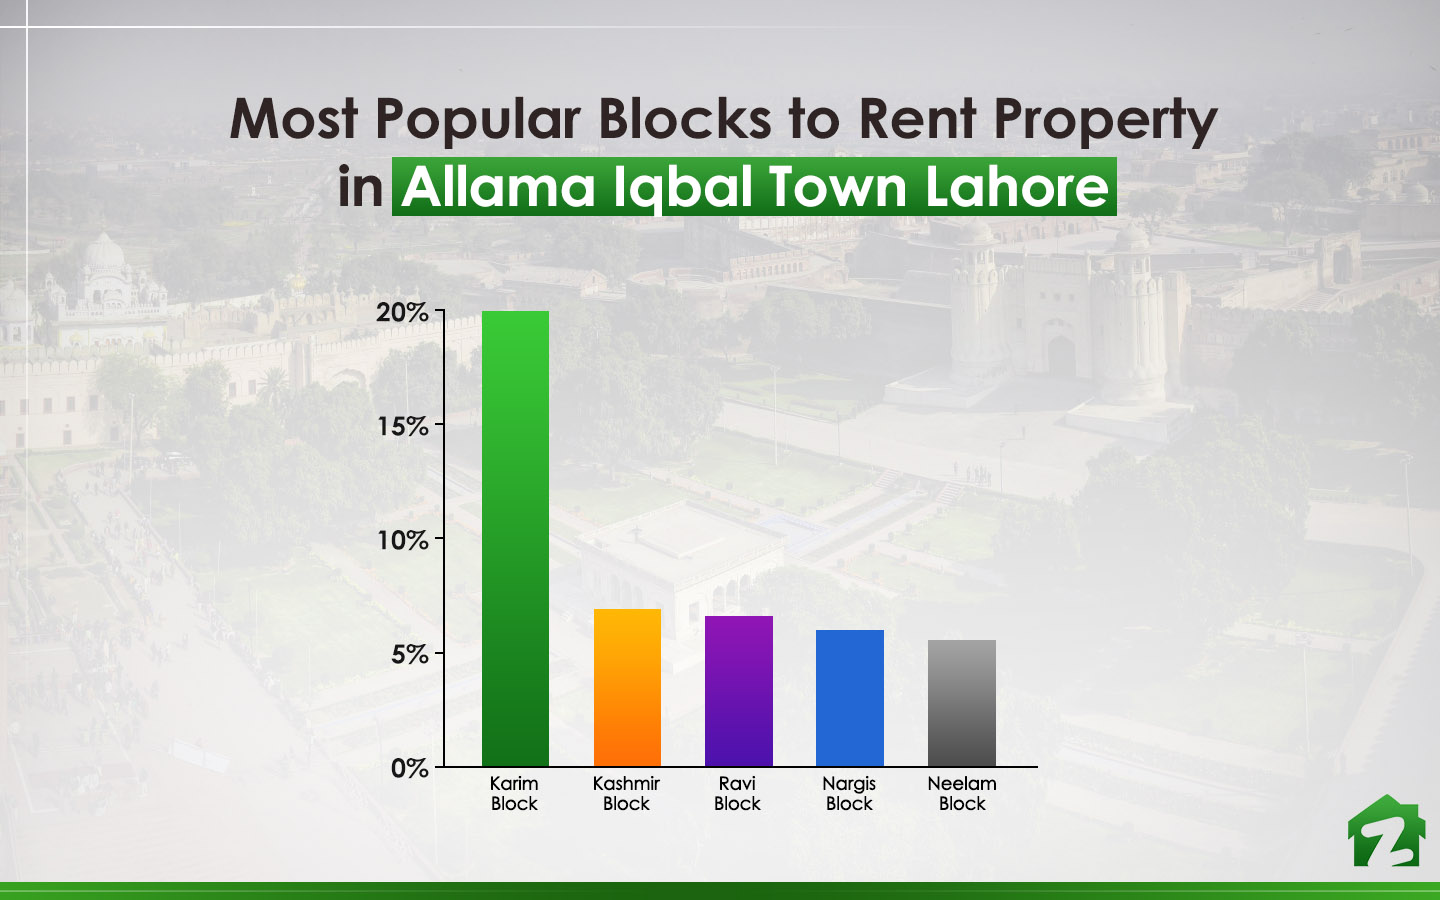 Karim Block was the most searched area when it comes to renting properties